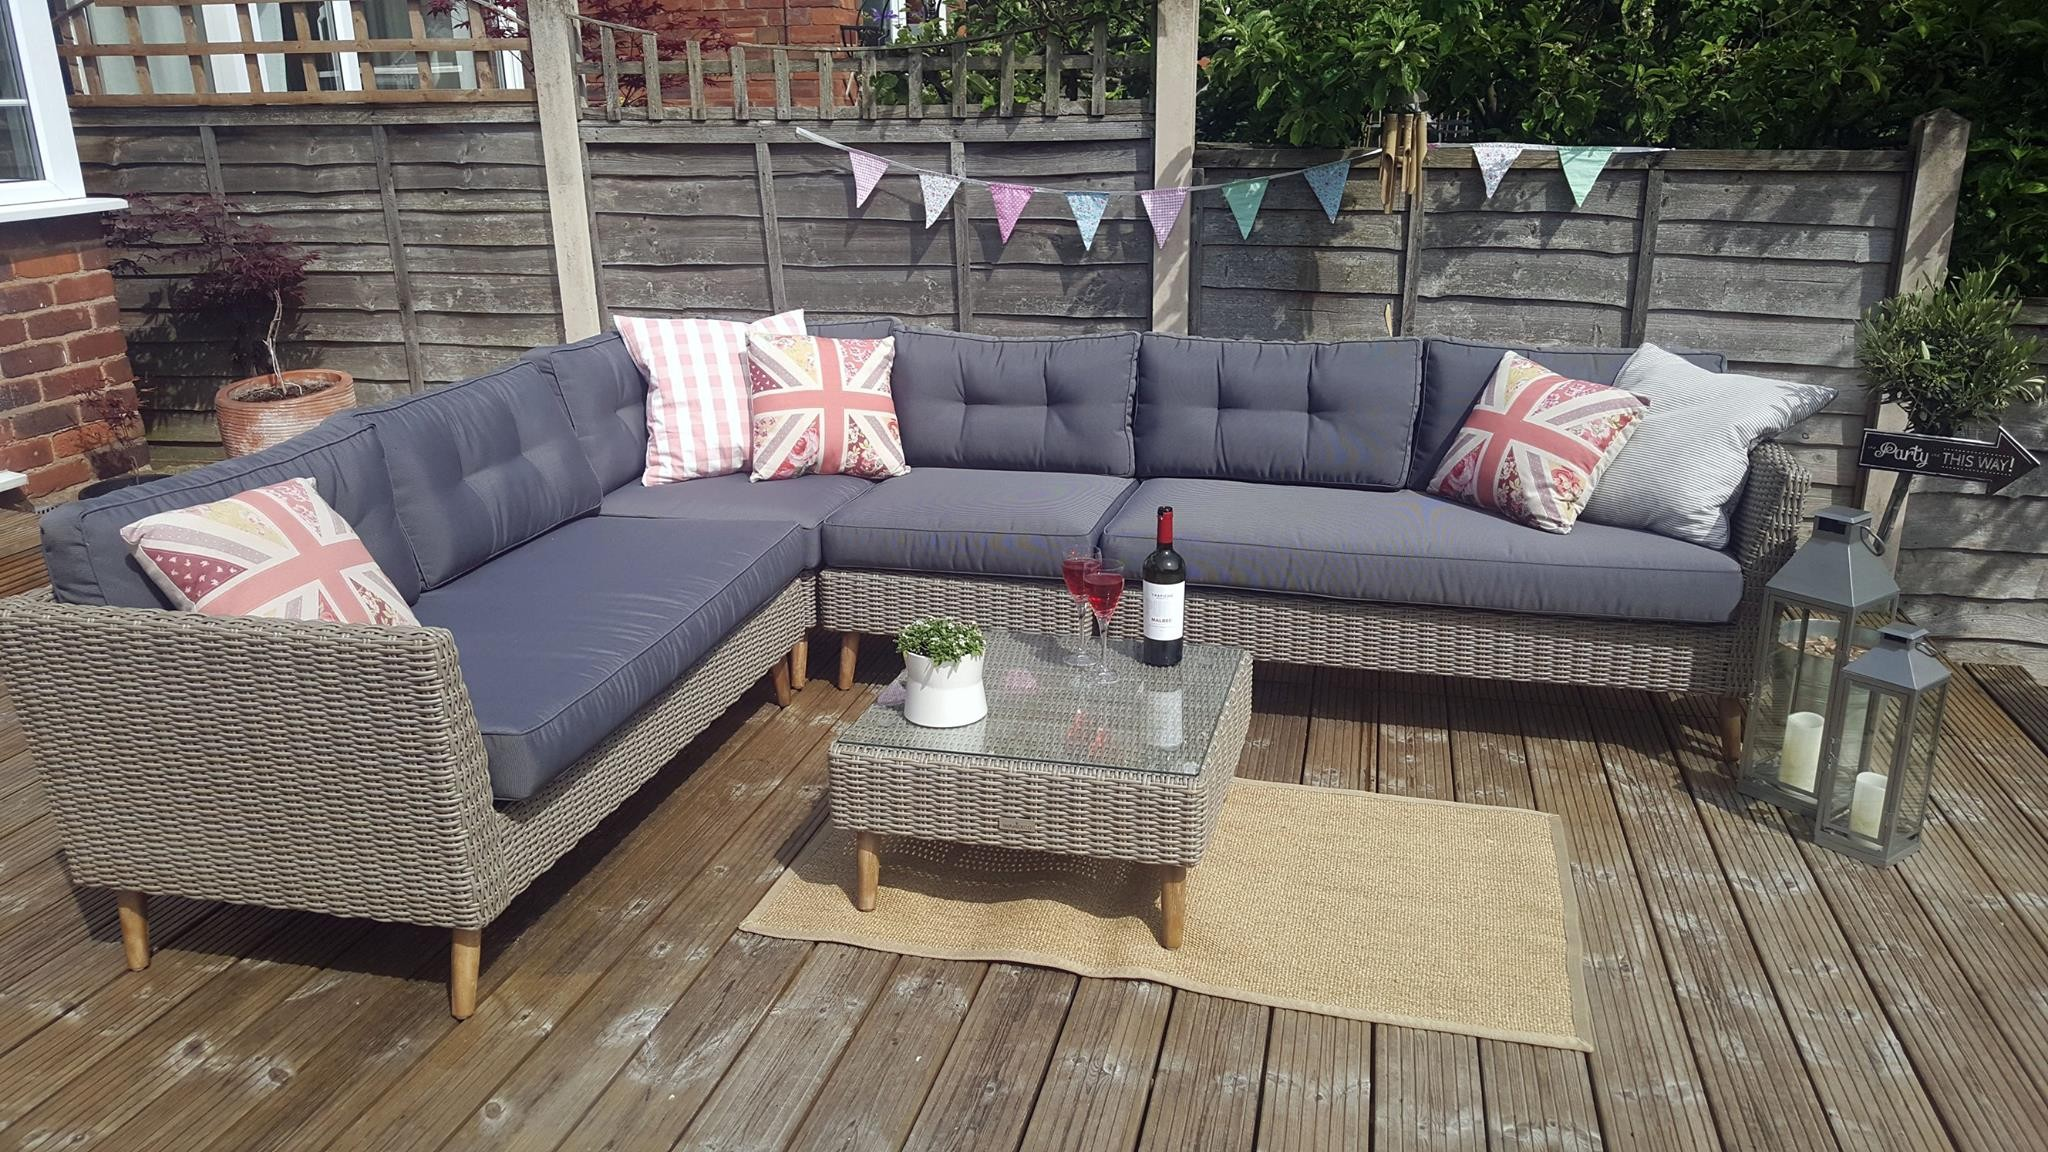 How To Choose An Elegant And Classy Outdoor Living Furniture